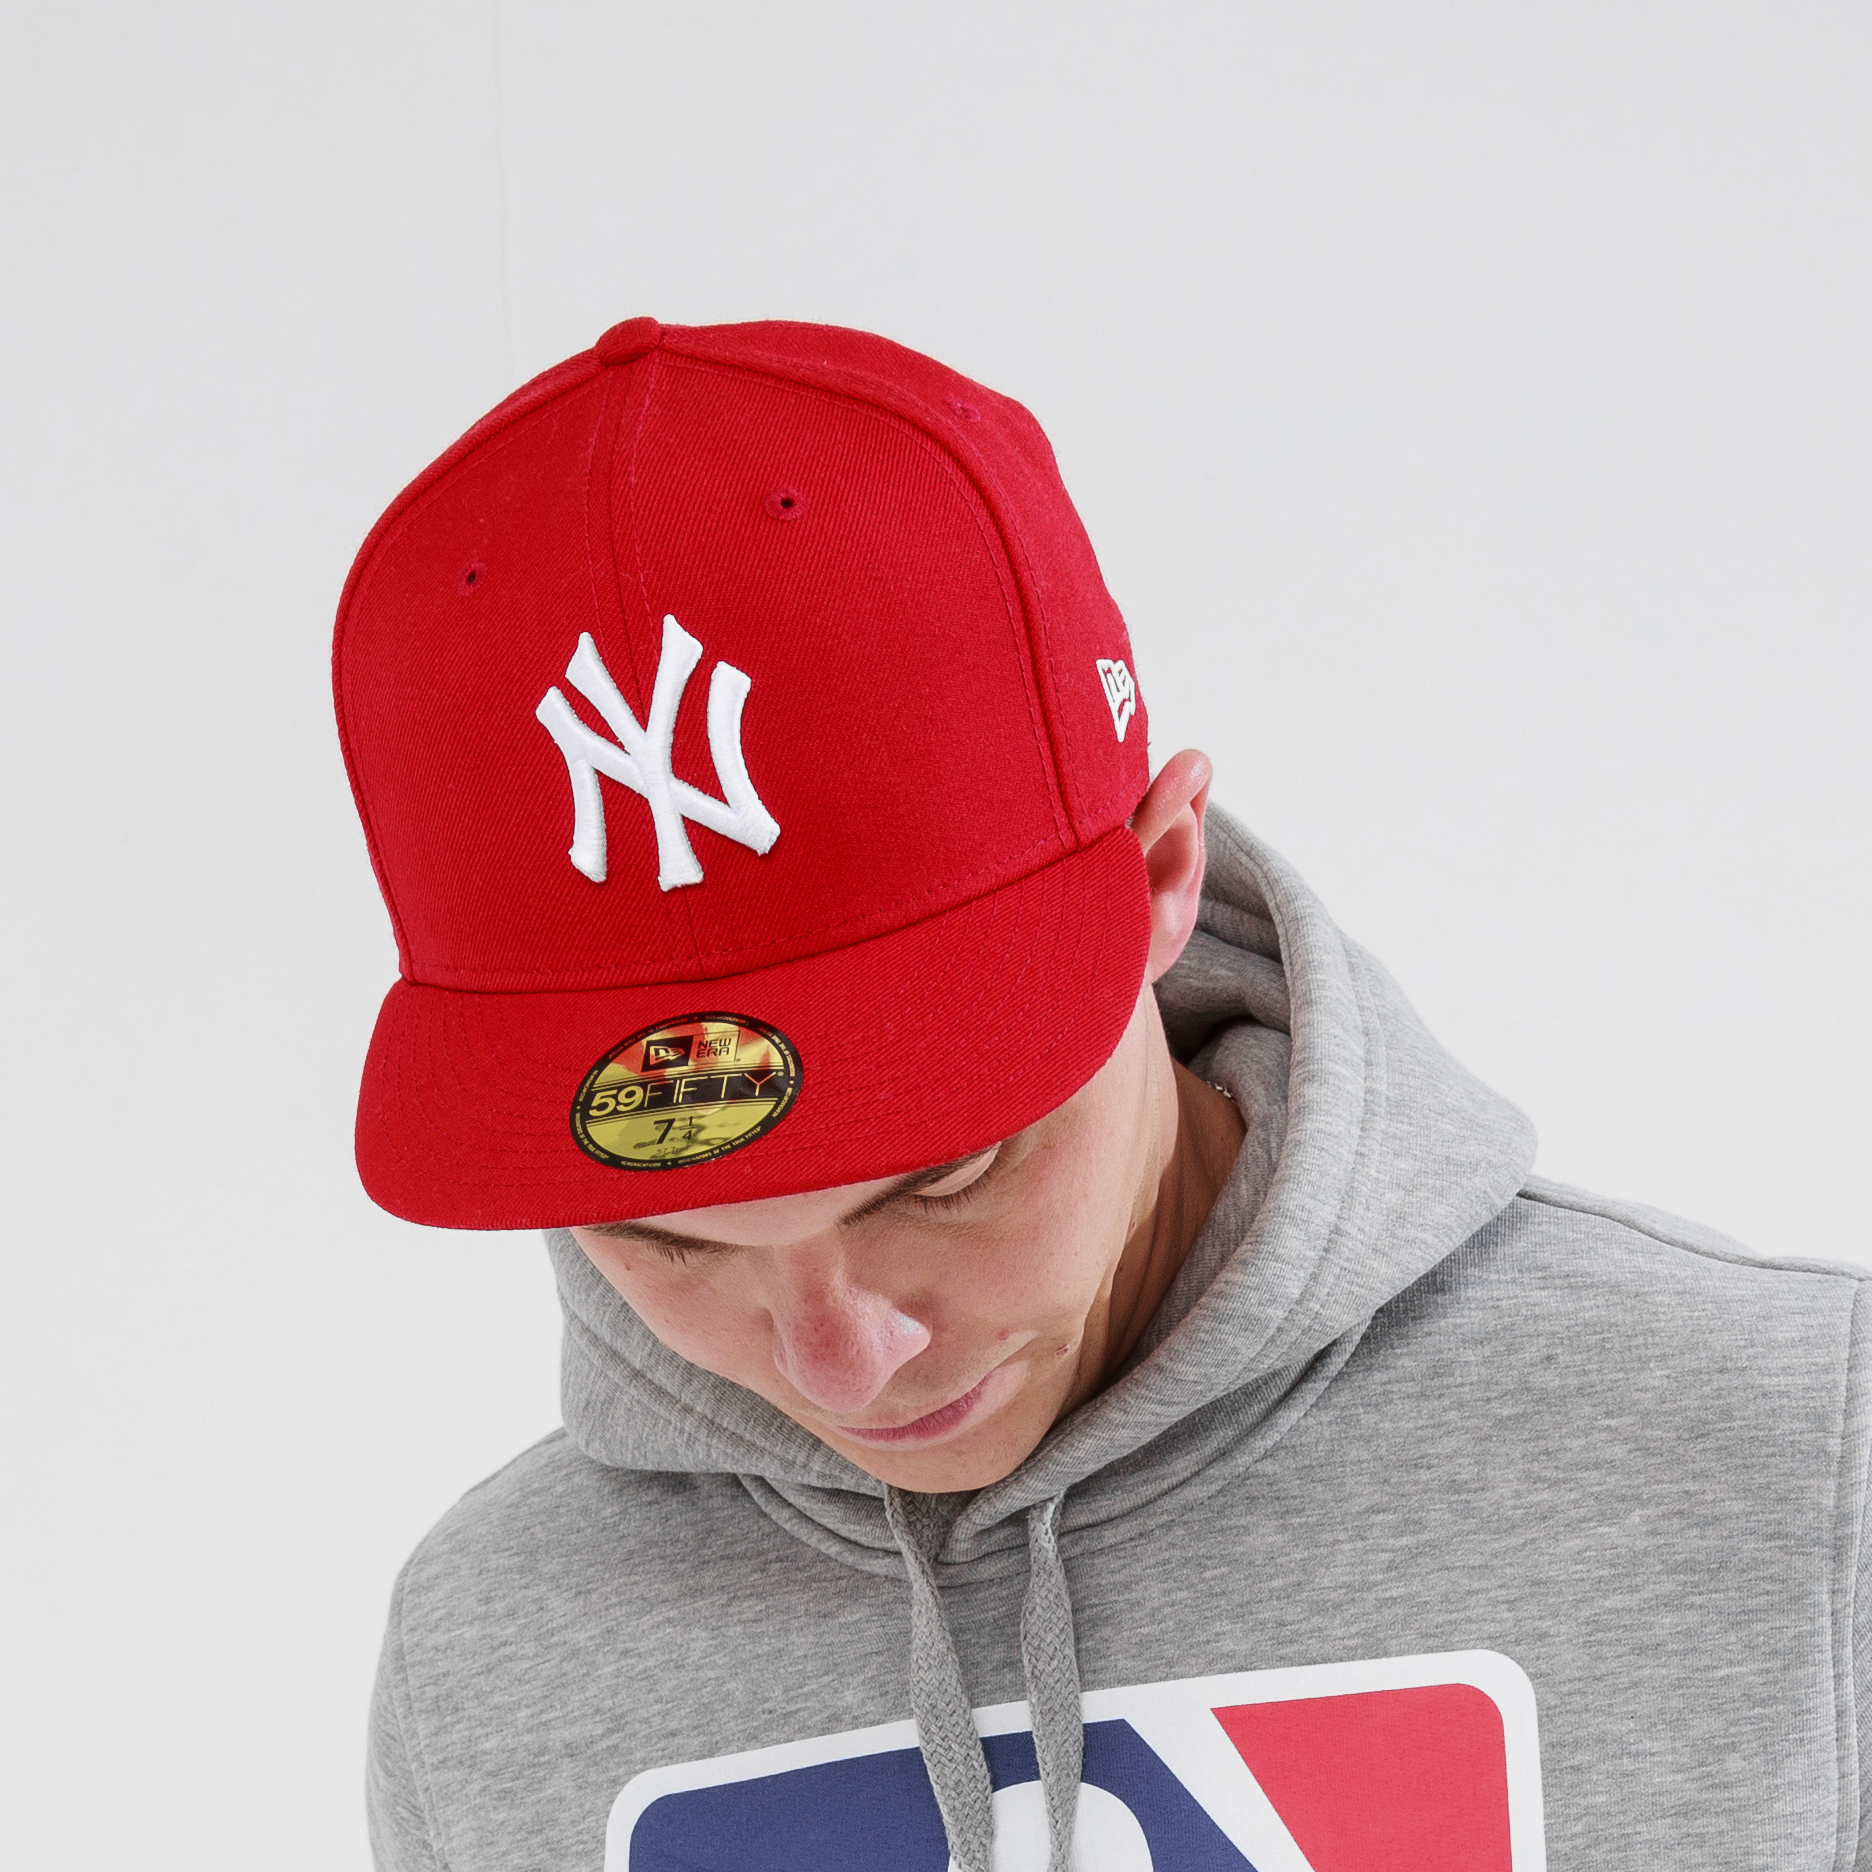 74cc83162bf81 Бейсболка 59FIFTY NY YANKEES ESSENTIAL RED